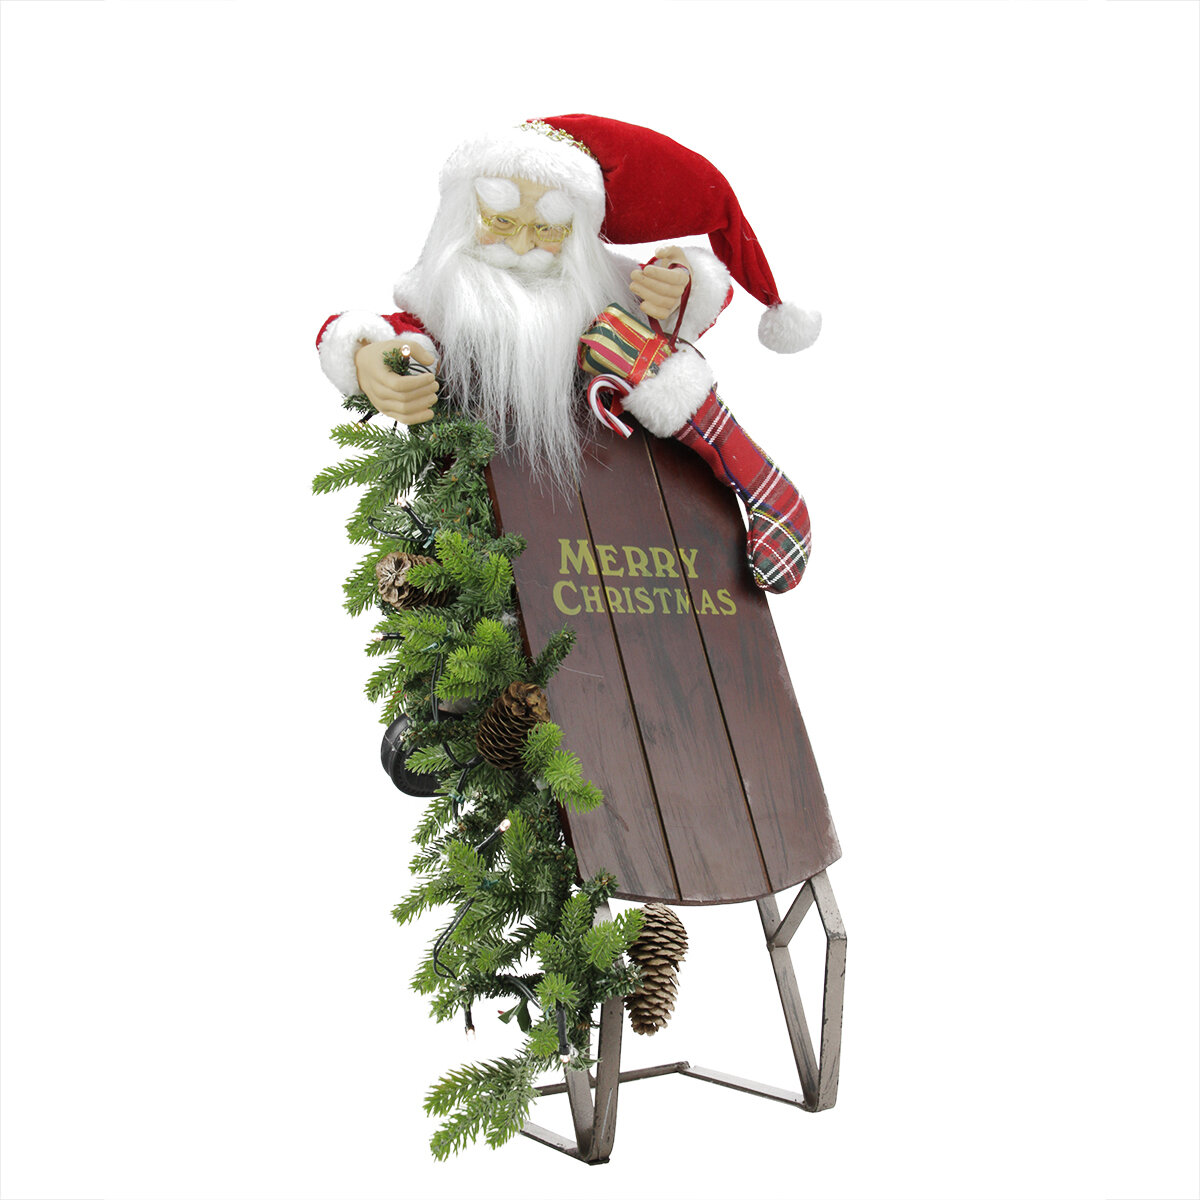 northlight battery operated lighted musical santa claus with sleigh christmas decoration wayfair